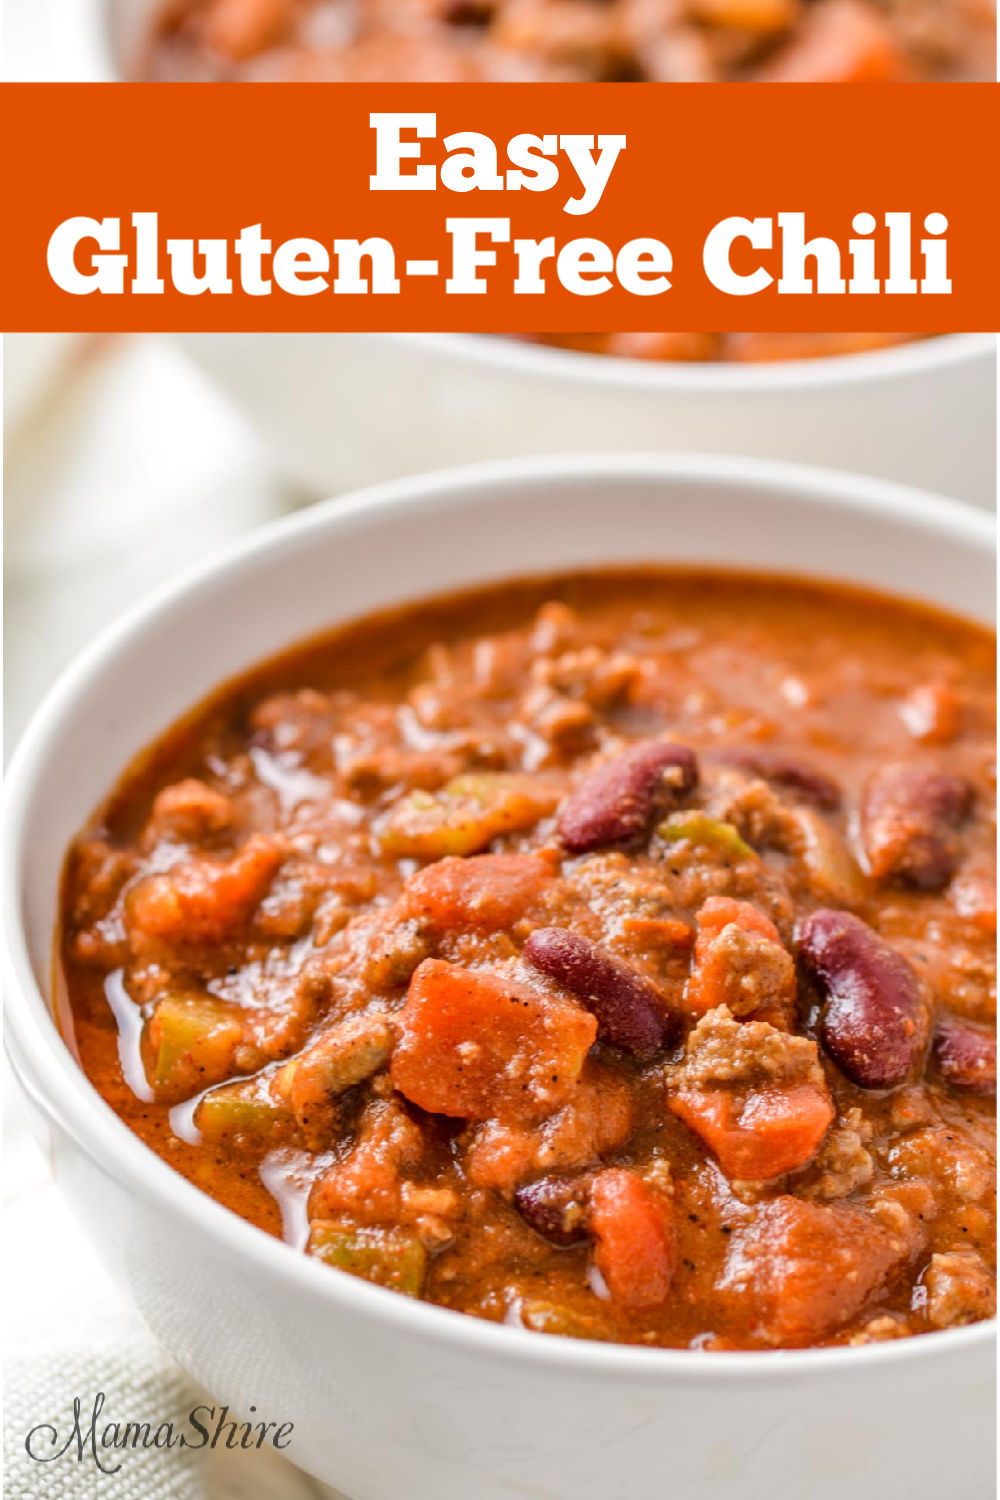 A bowl of gluten-free chili.